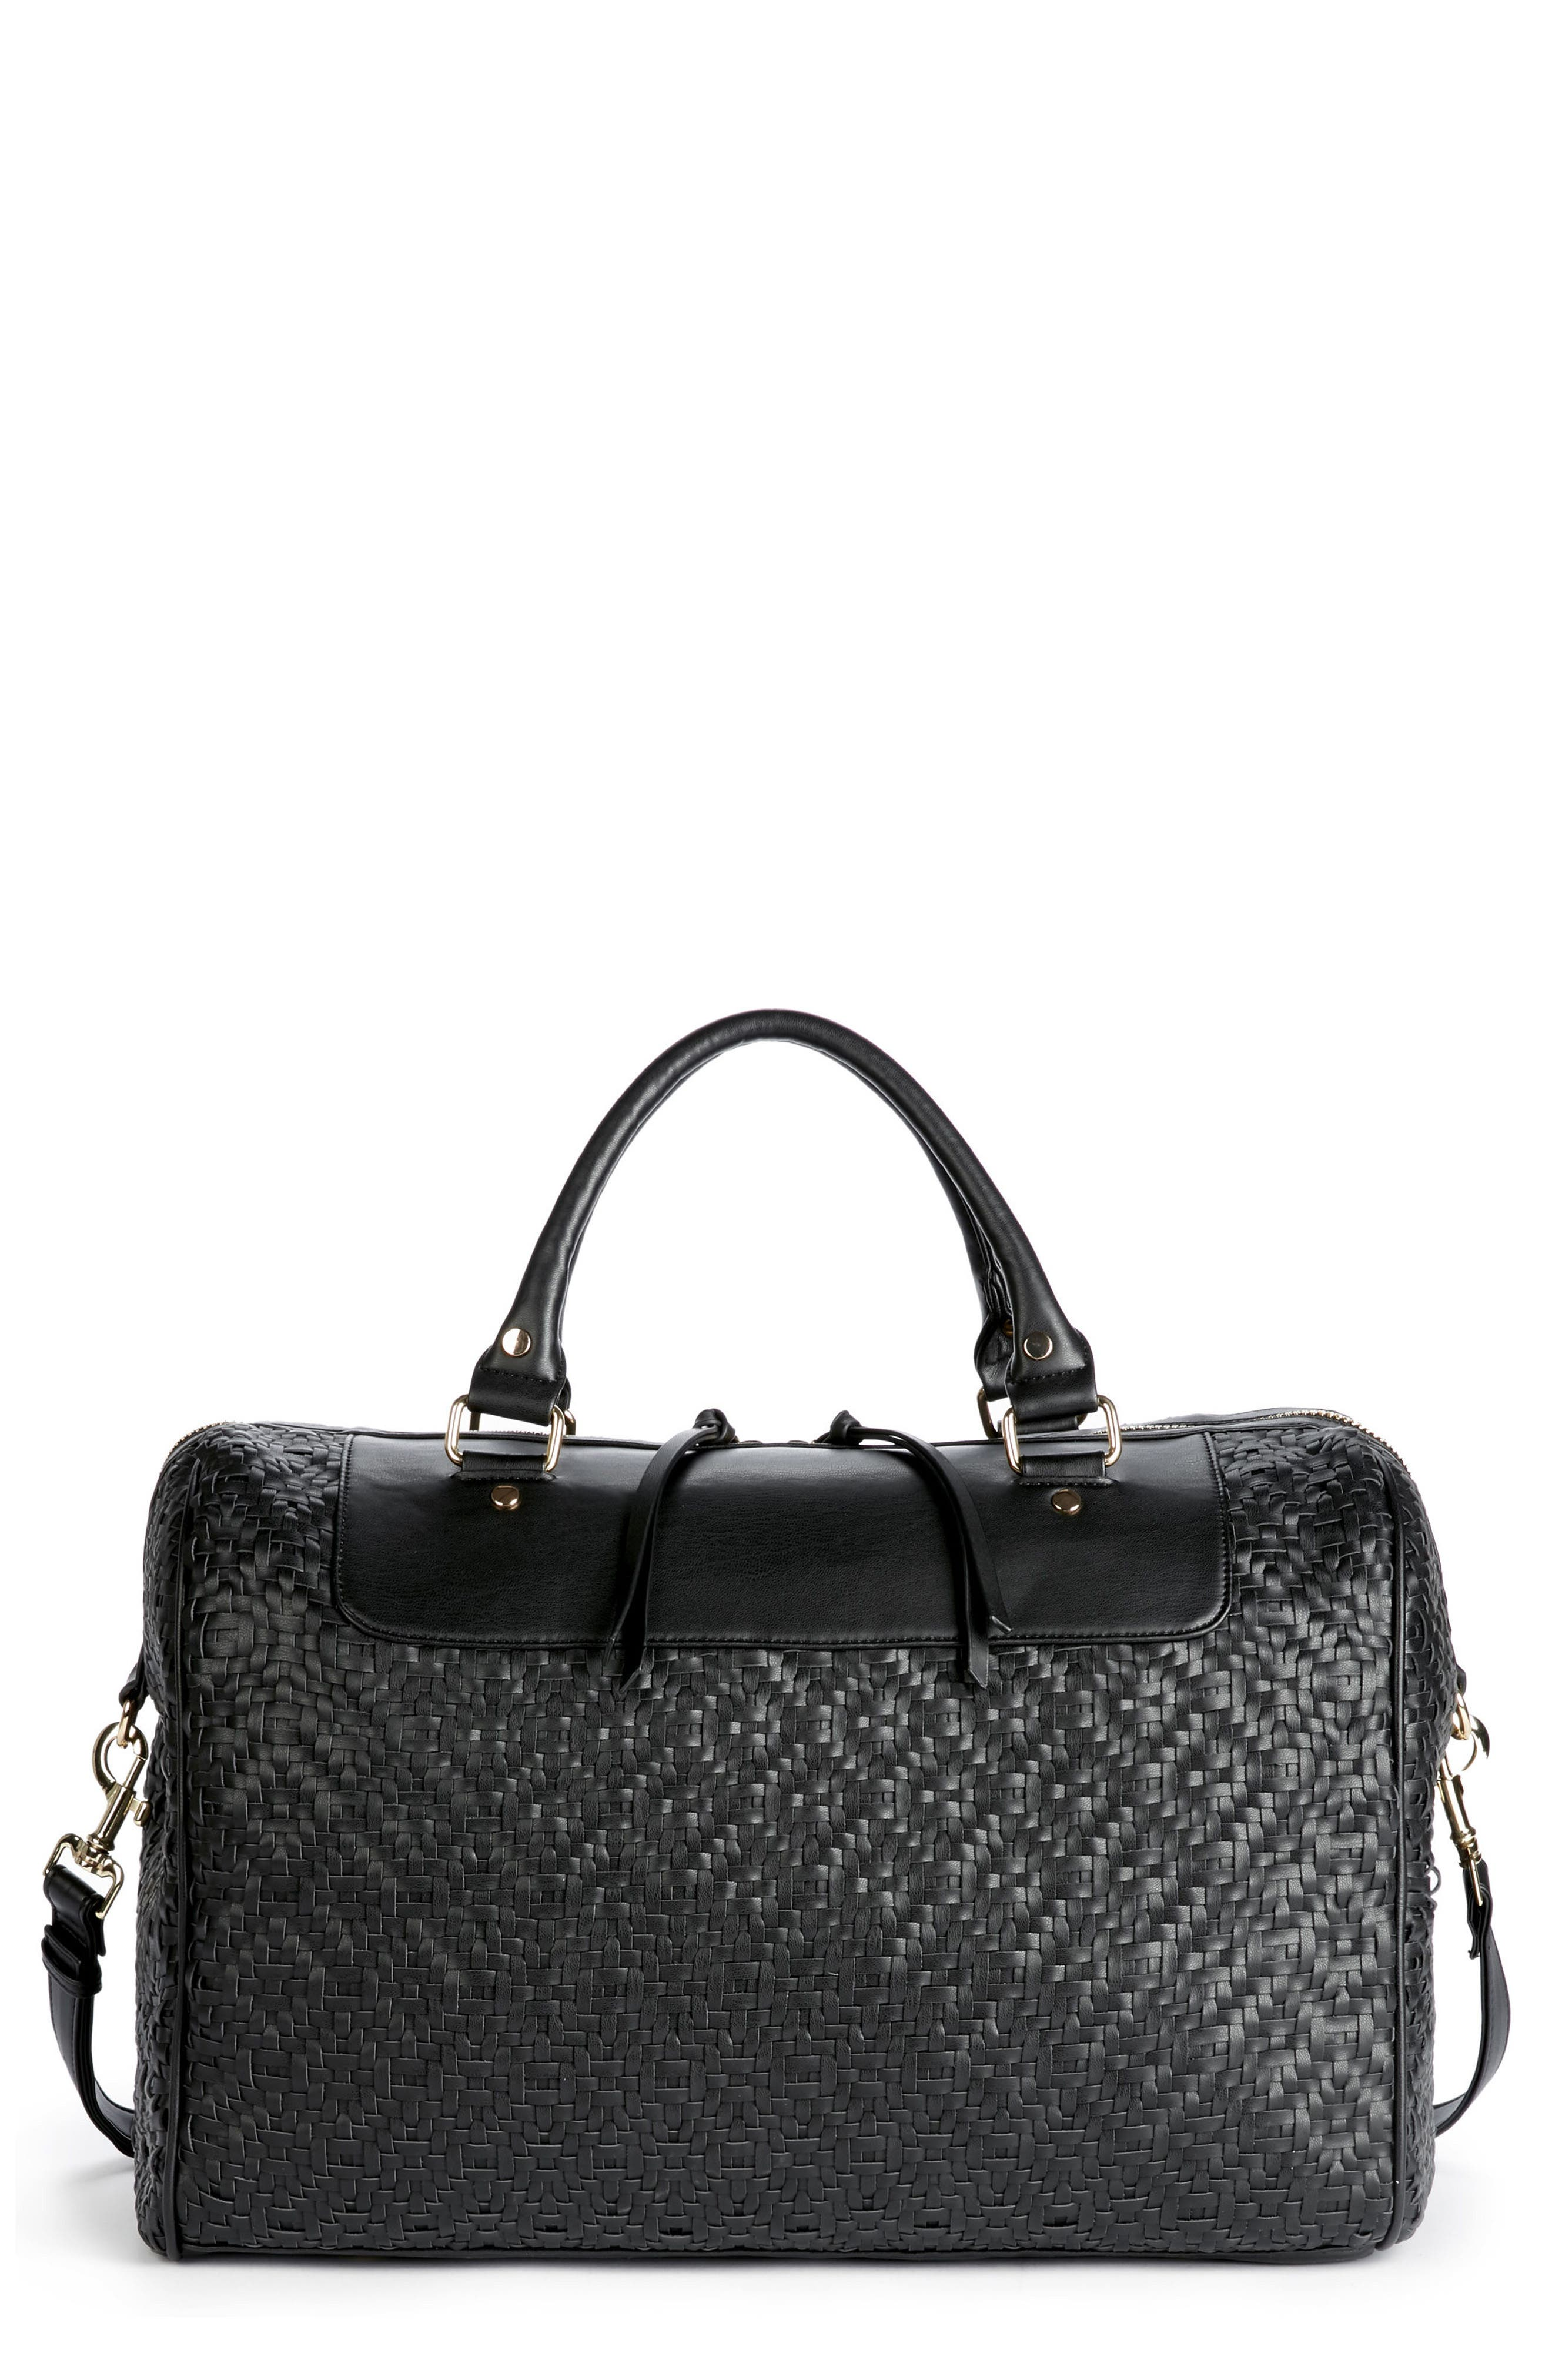 SOLE SOCIETY Weave Oversize Satchel, Main, color, 001